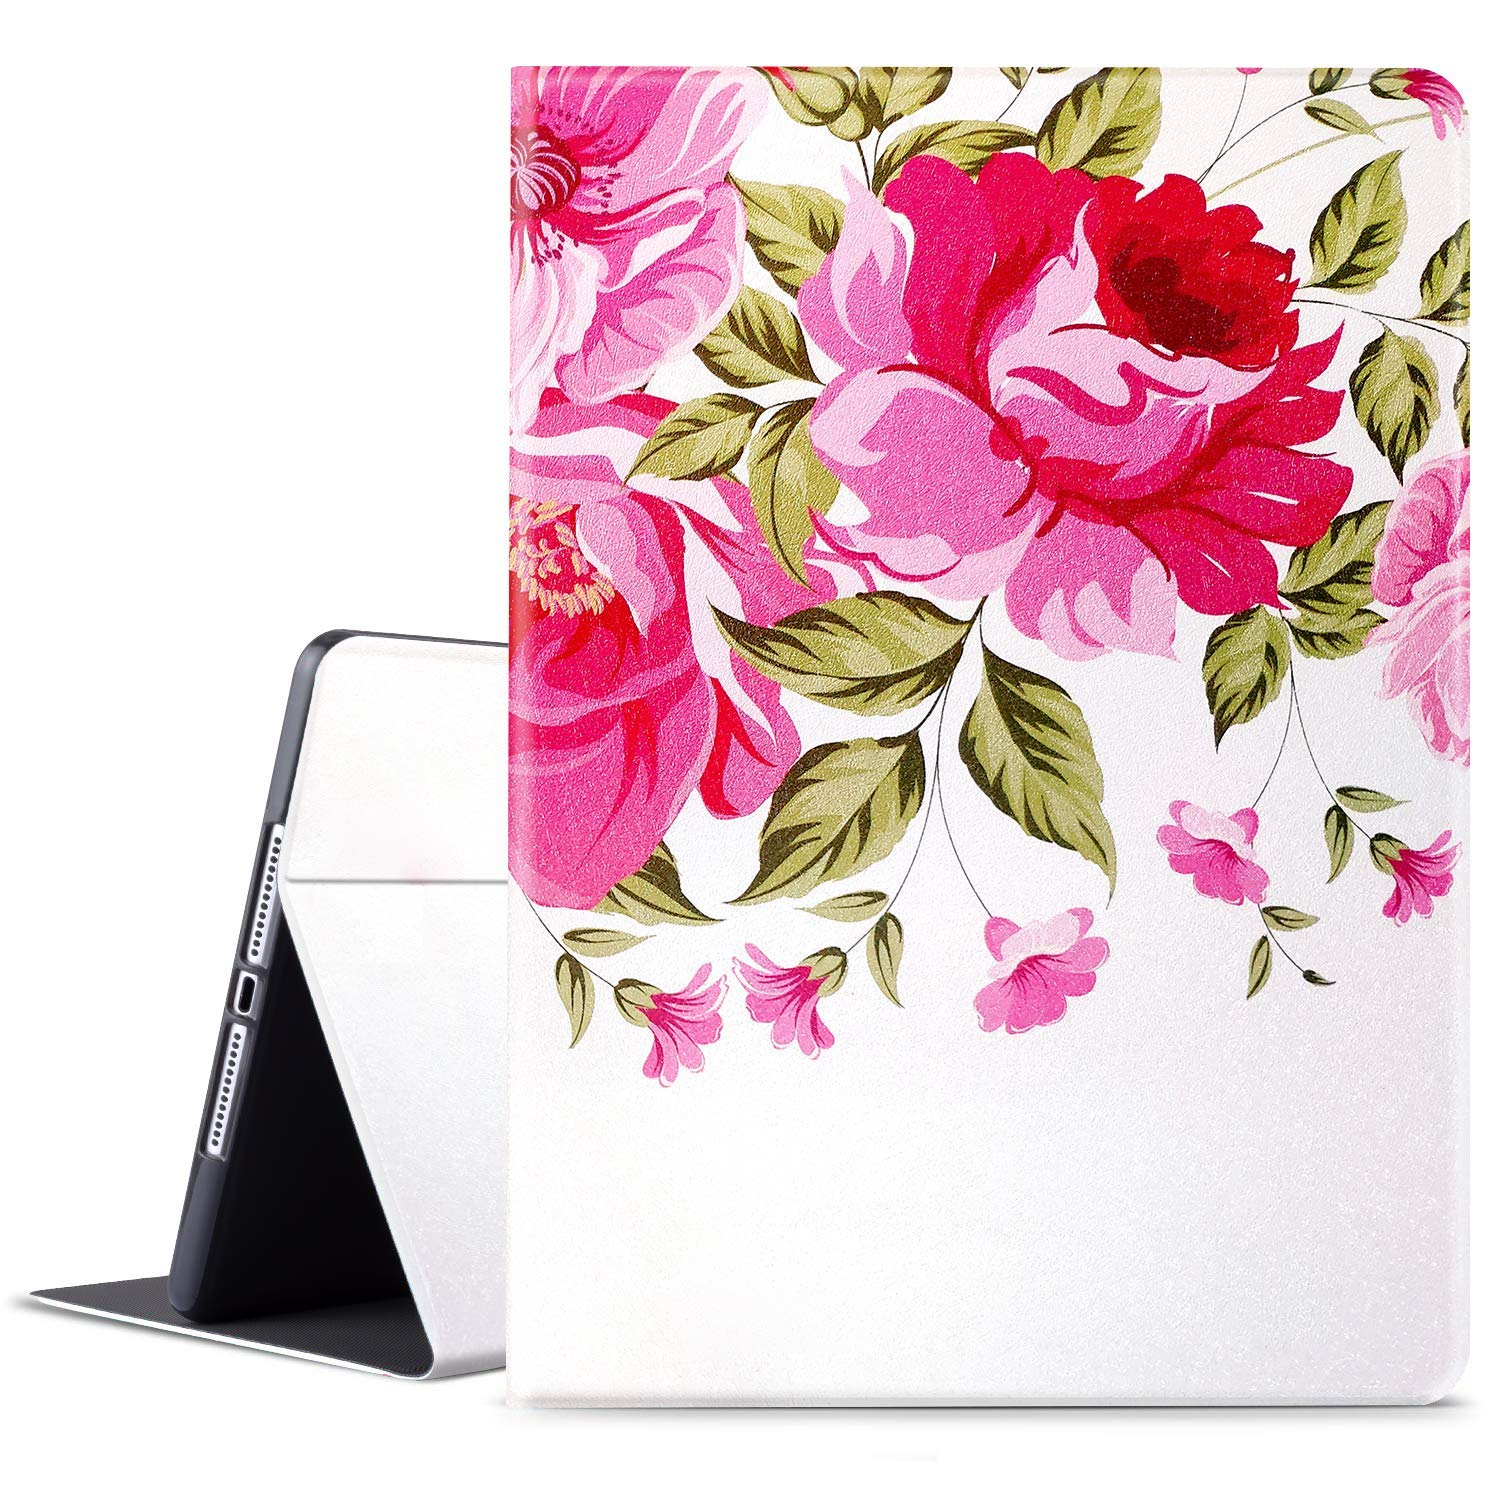 HBorna New iPad 10.2 Case (2019 iPad 7th Generation), Adjustable Stand Folio Cover with Auto Sleep/Wake Function, 10.2 inch Case for Apple iPad 7th Gen, Red Floral